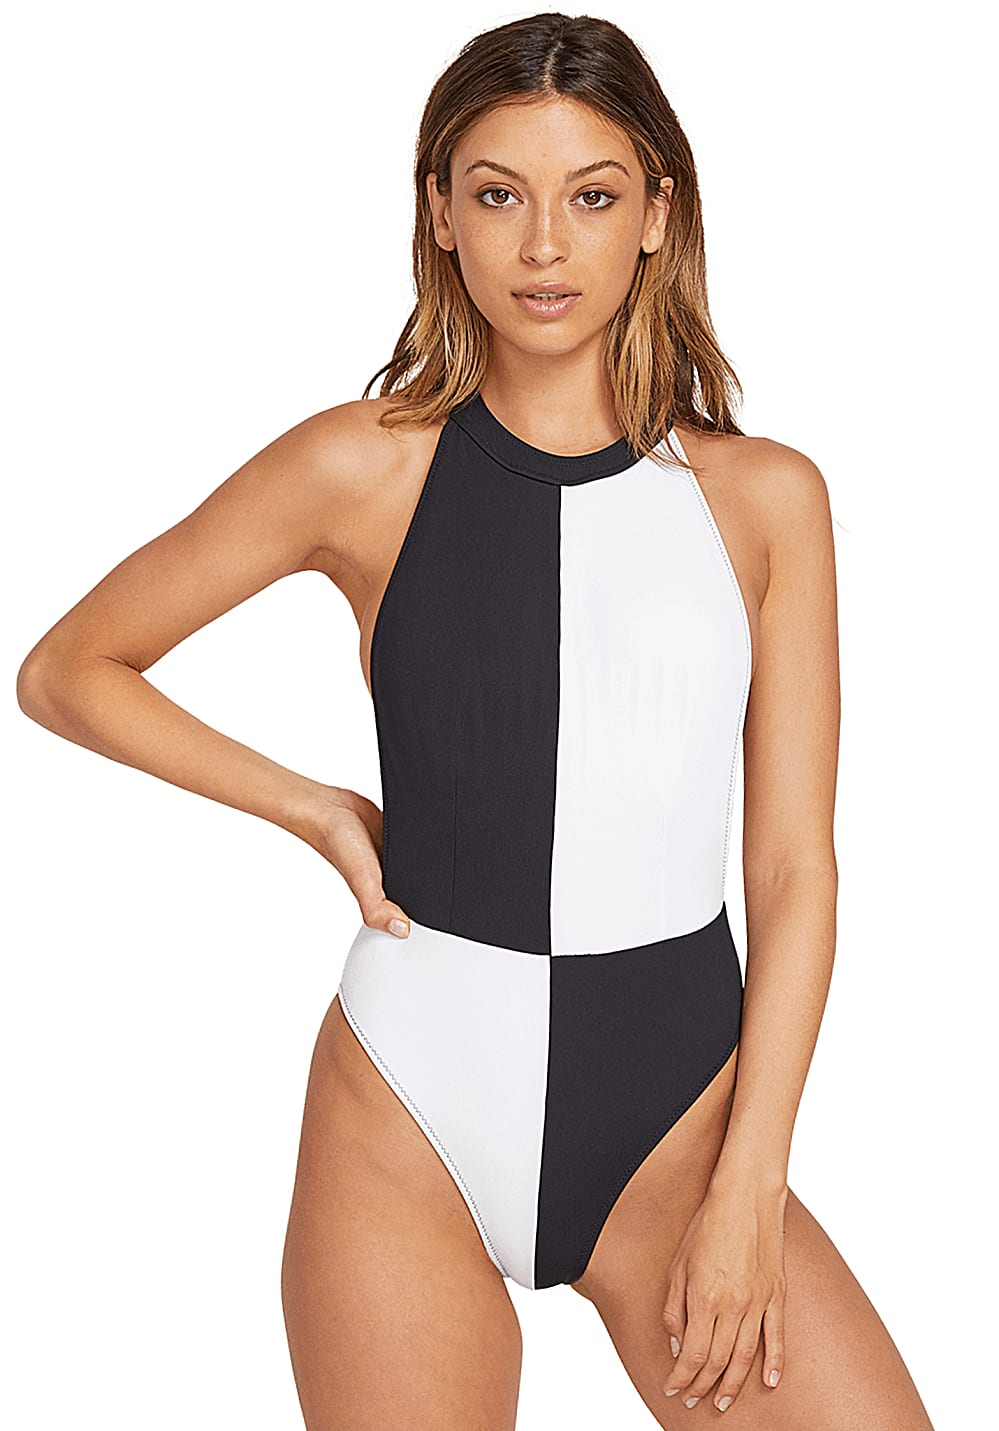 ebfe1430805d2 ... Volcom Simply Rib - One-piece Swimsuit for Women - Black. Back to  Overview. 1; 2. Previous